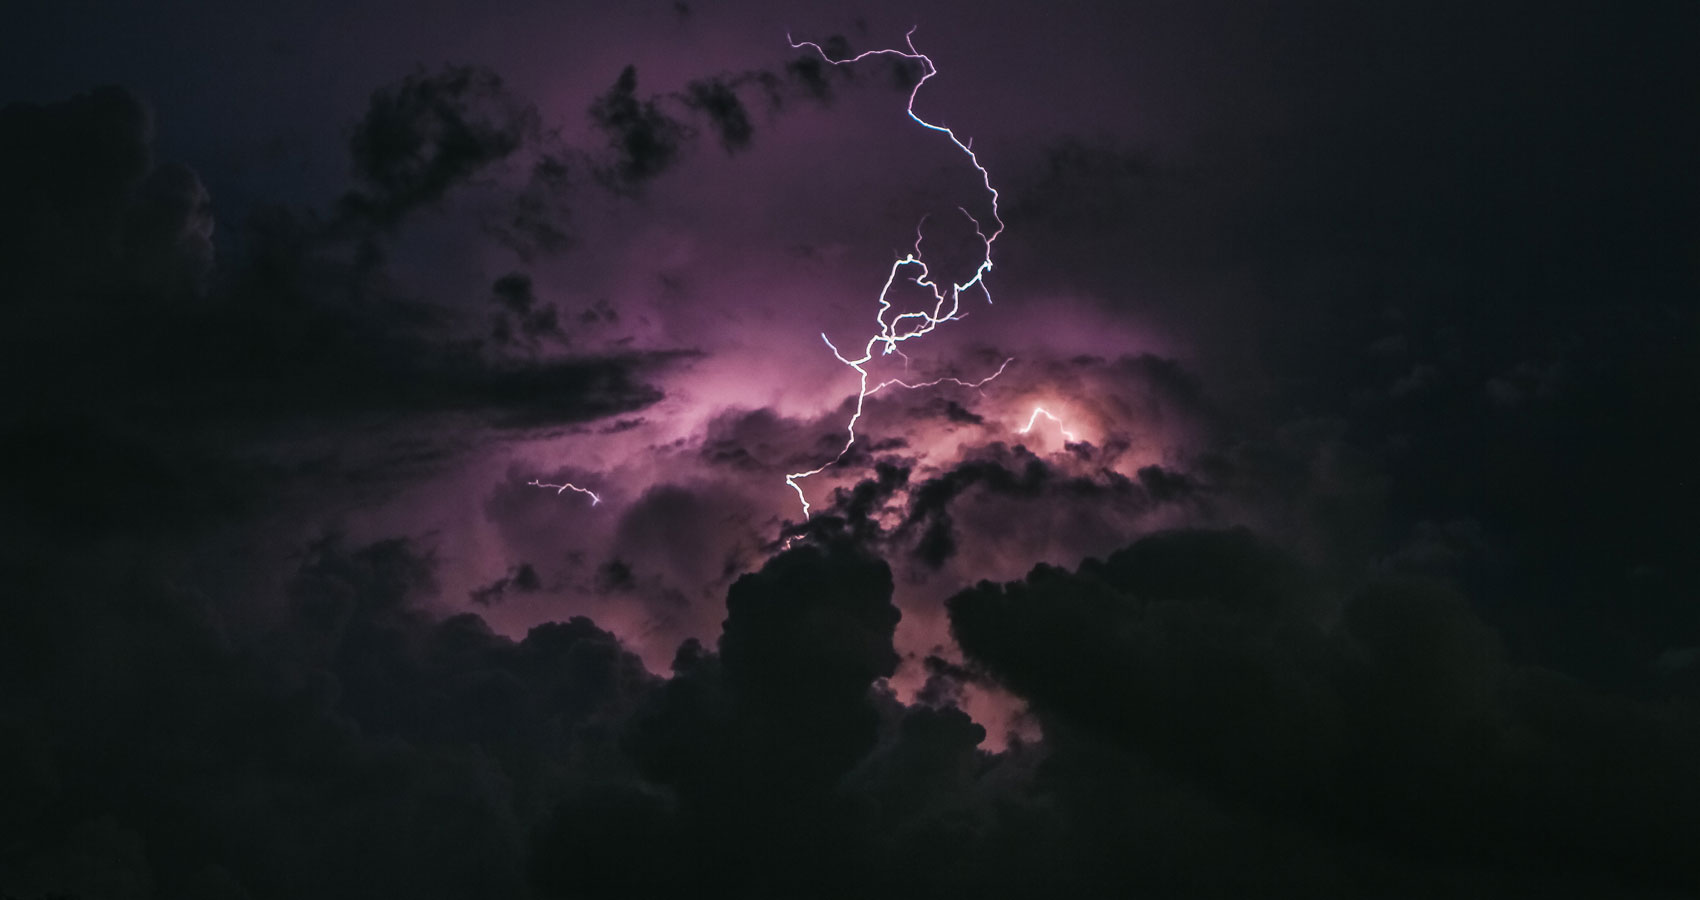 The Storm, poetry written by Immortal Magpie at Spillwords.com